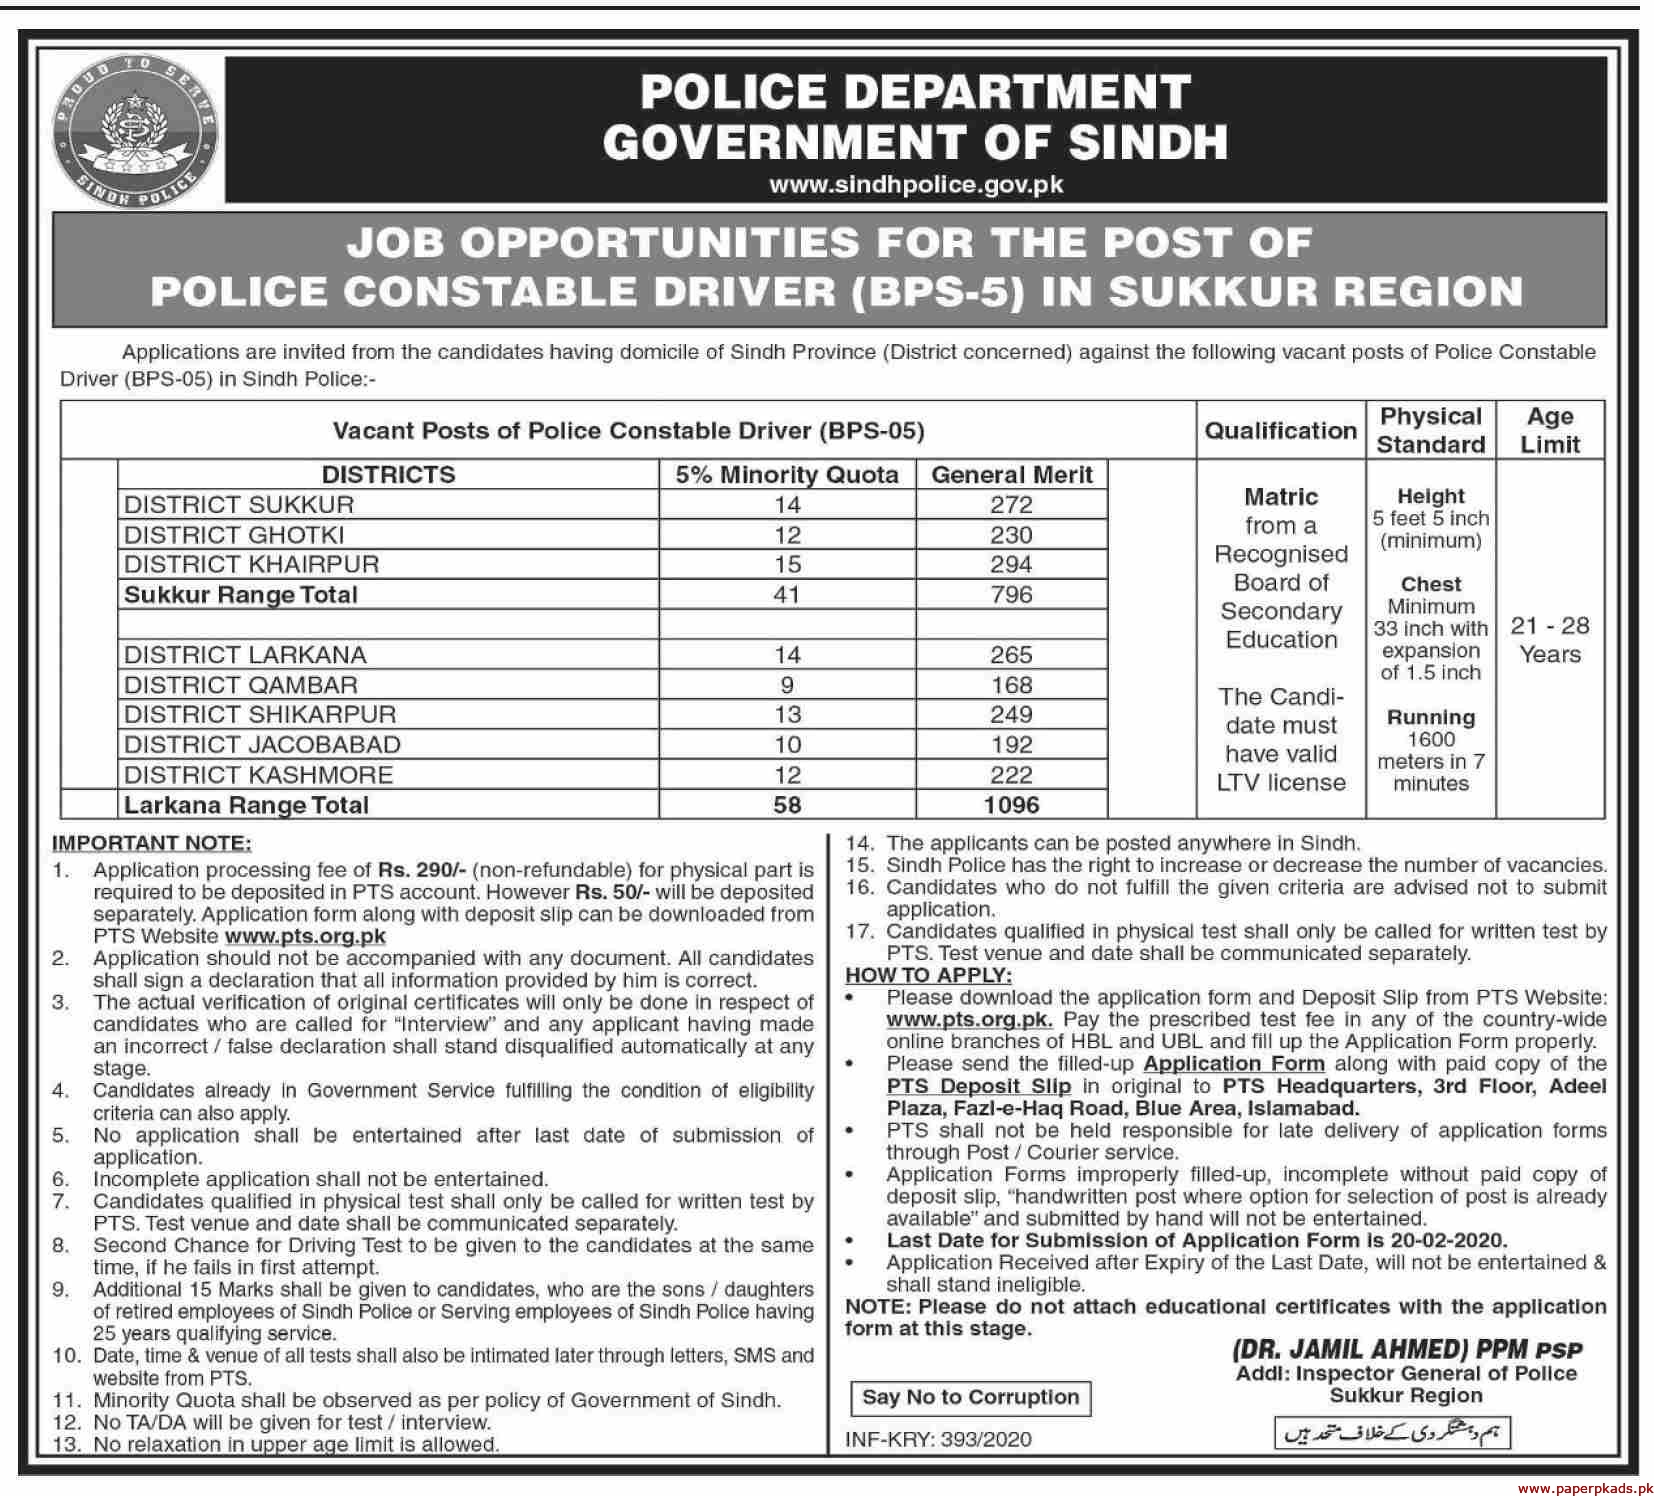 Police Department Government of Sindh Latest Jobs 2020